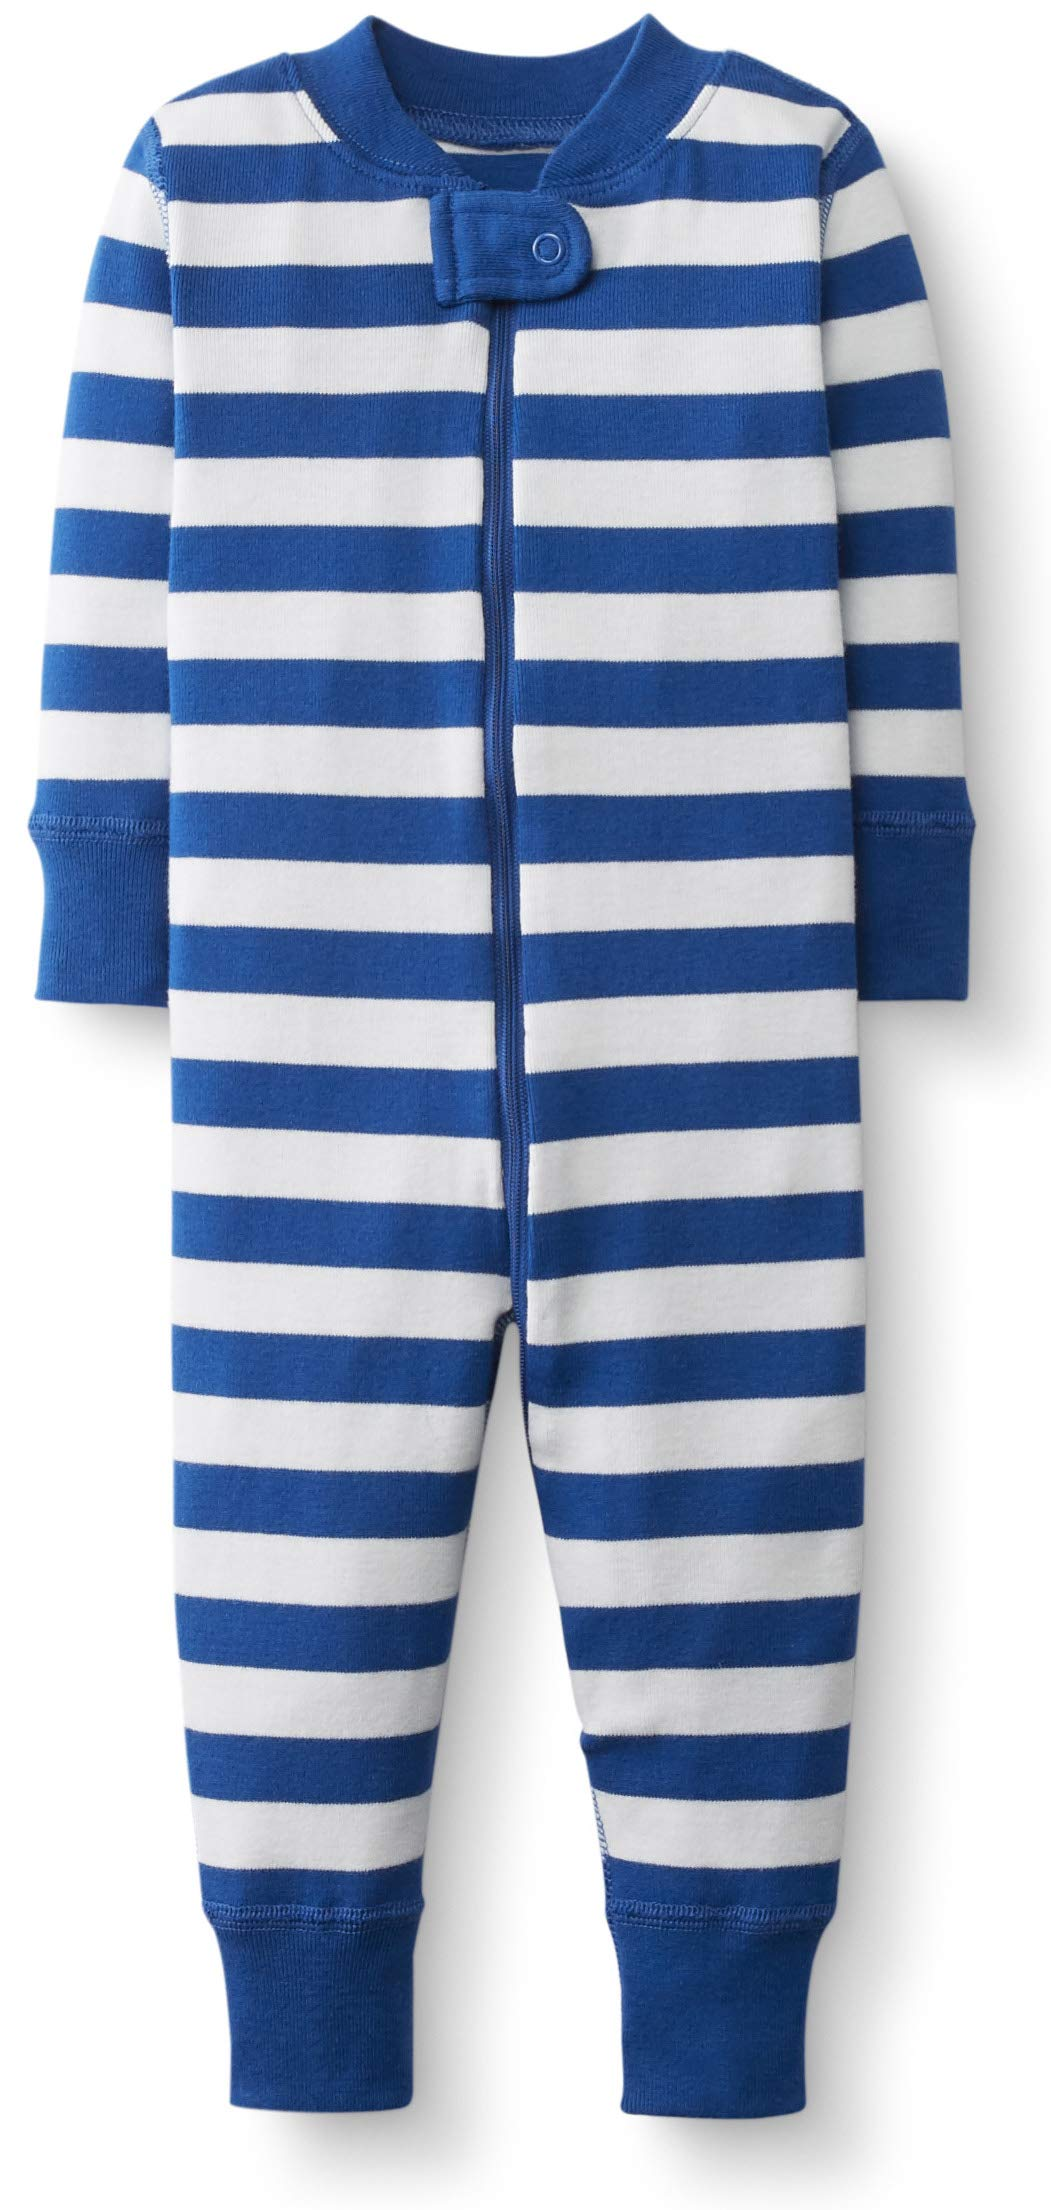 Hanna Andersson Baby/Toddler One-Piece Organic Cotton Footless Pajama Baltic Blue/Hanna White-50 by Hanna Andersson